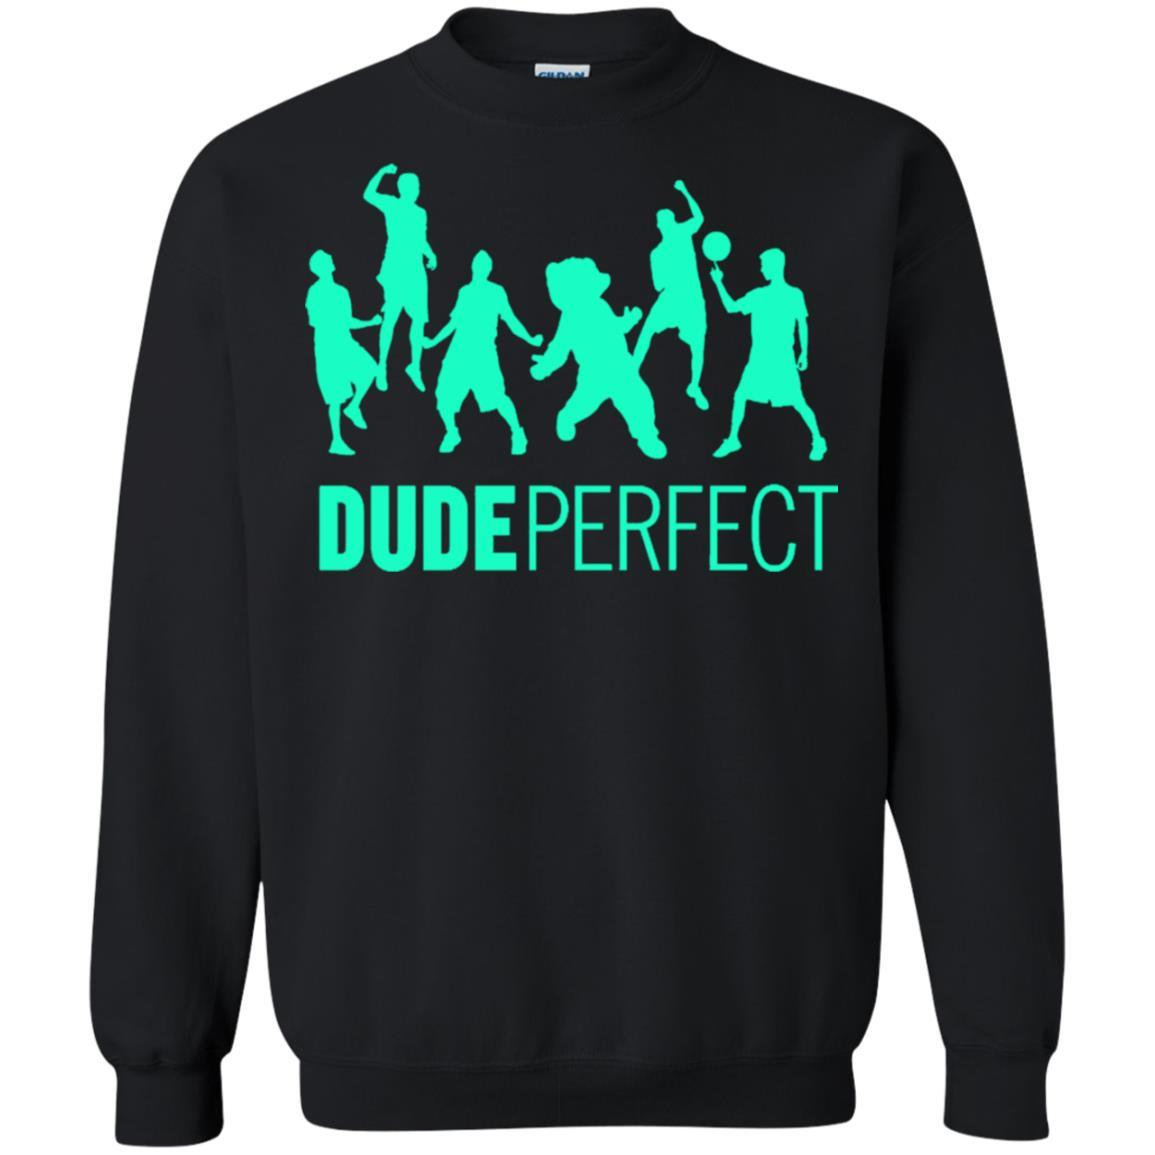 Dude Perfect - Sweatshirt